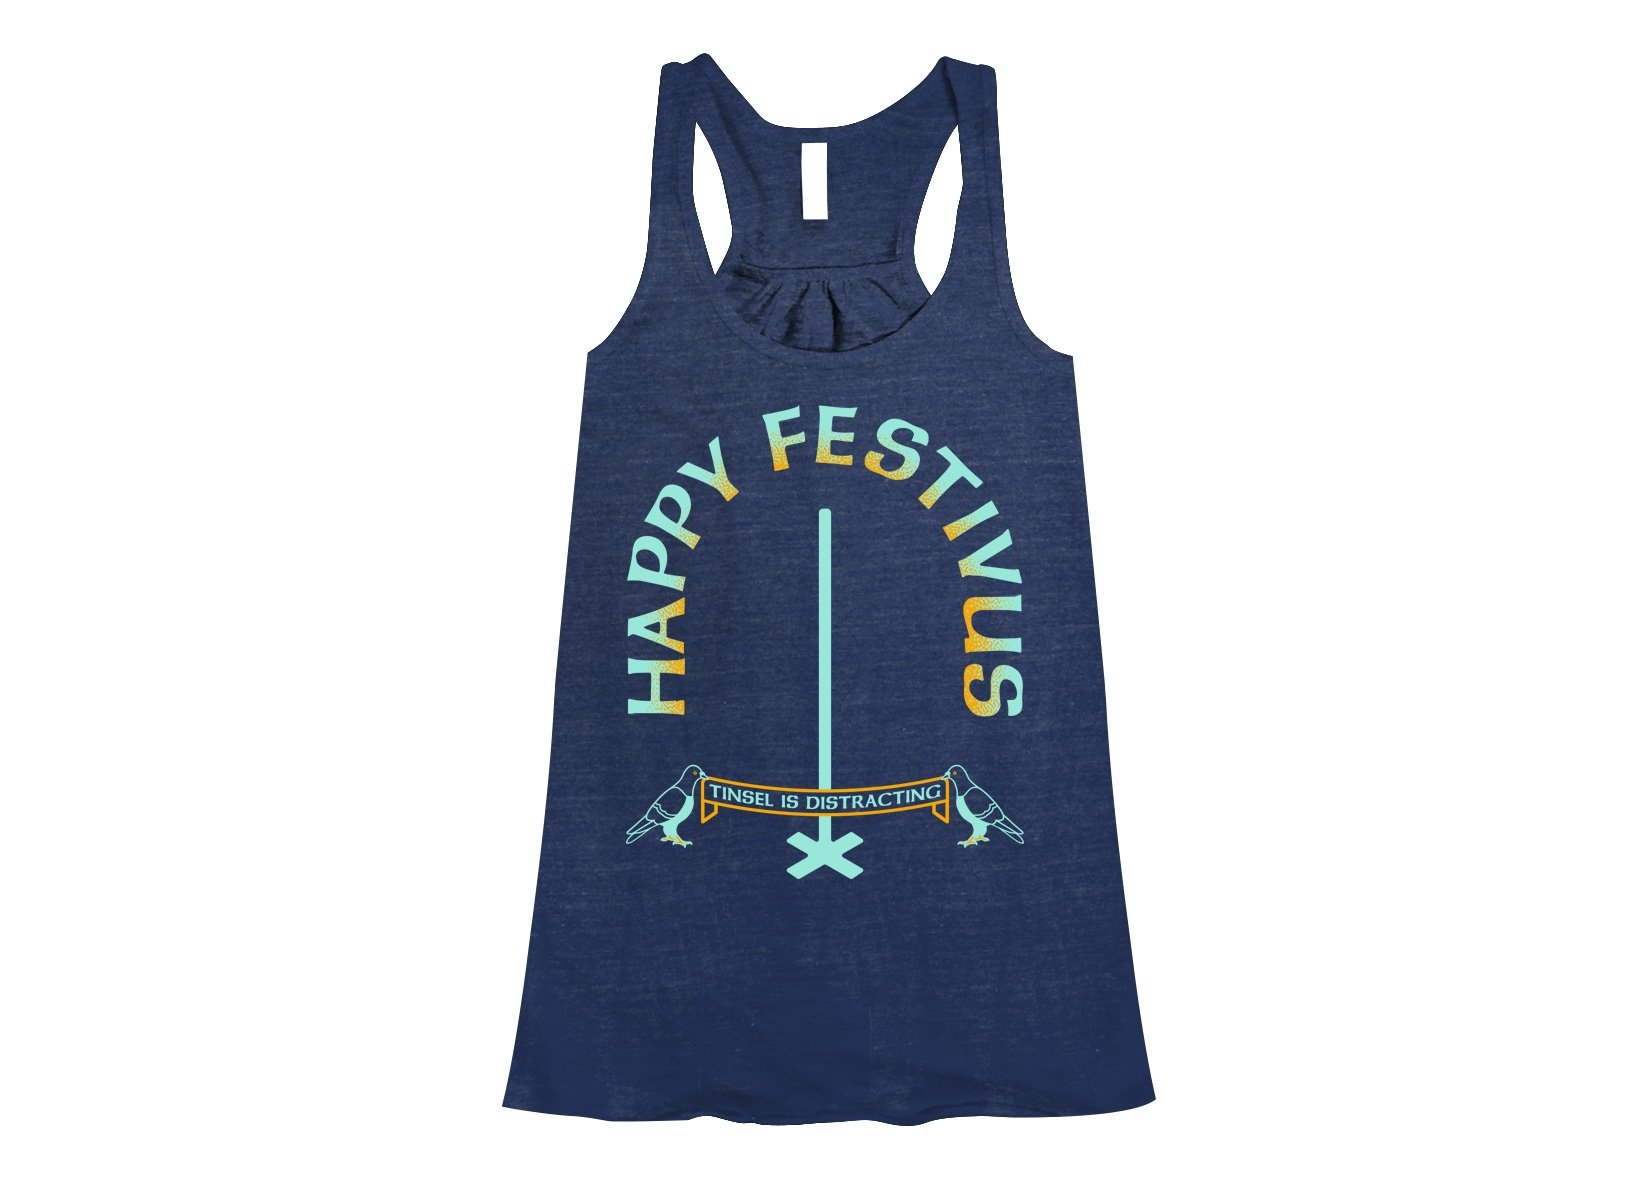 Happy Festivus on Womens Tanks T-Shirt